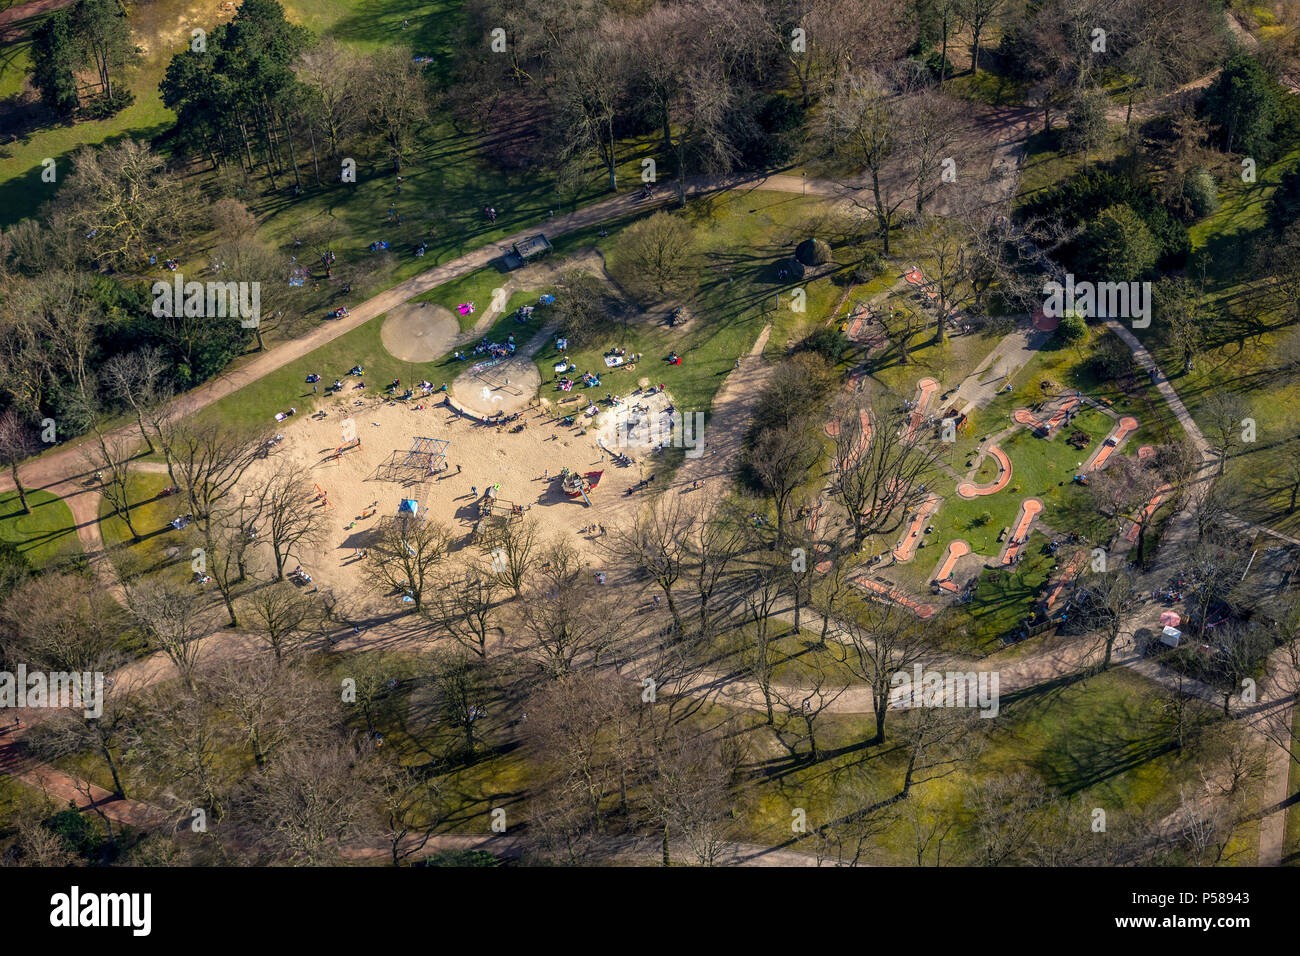 Miniature Golf Course Stock Photos & Miniature Golf Course Stock ...